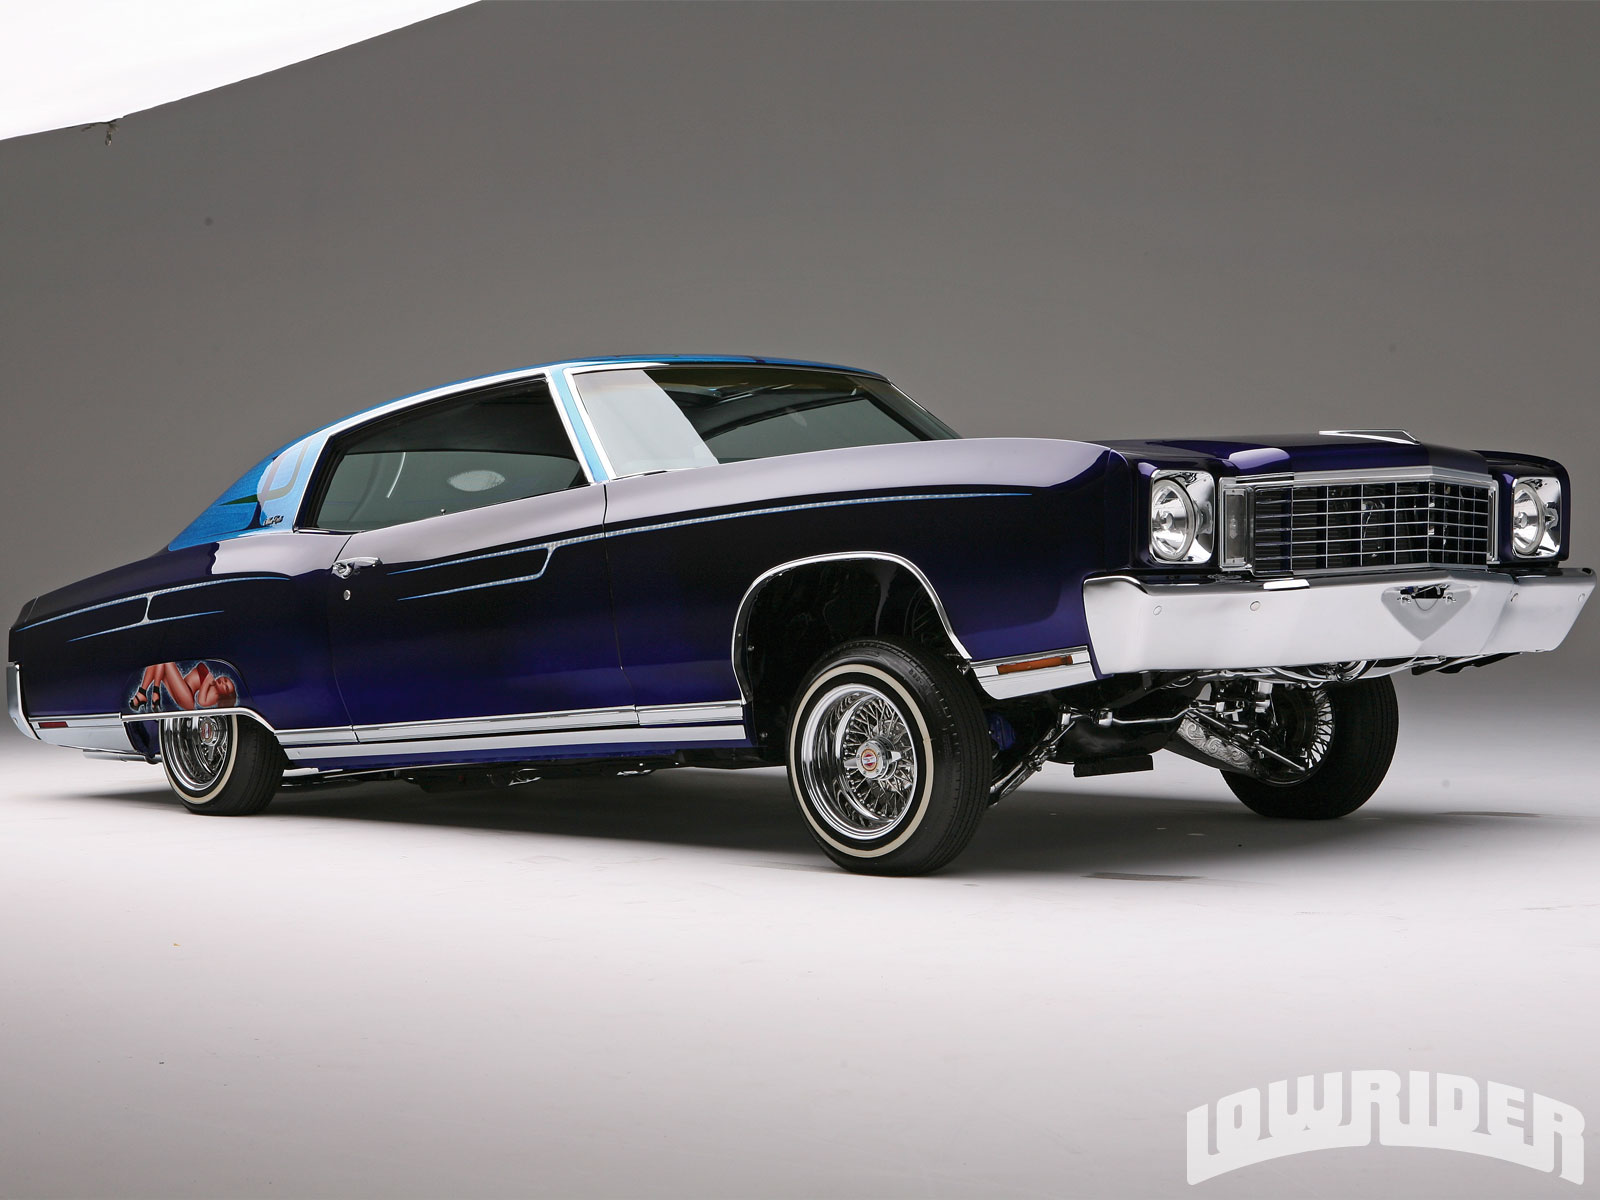 lrmp-1007-27-o-1972-chevy-monte-carlo-lifted-front - Lowrider